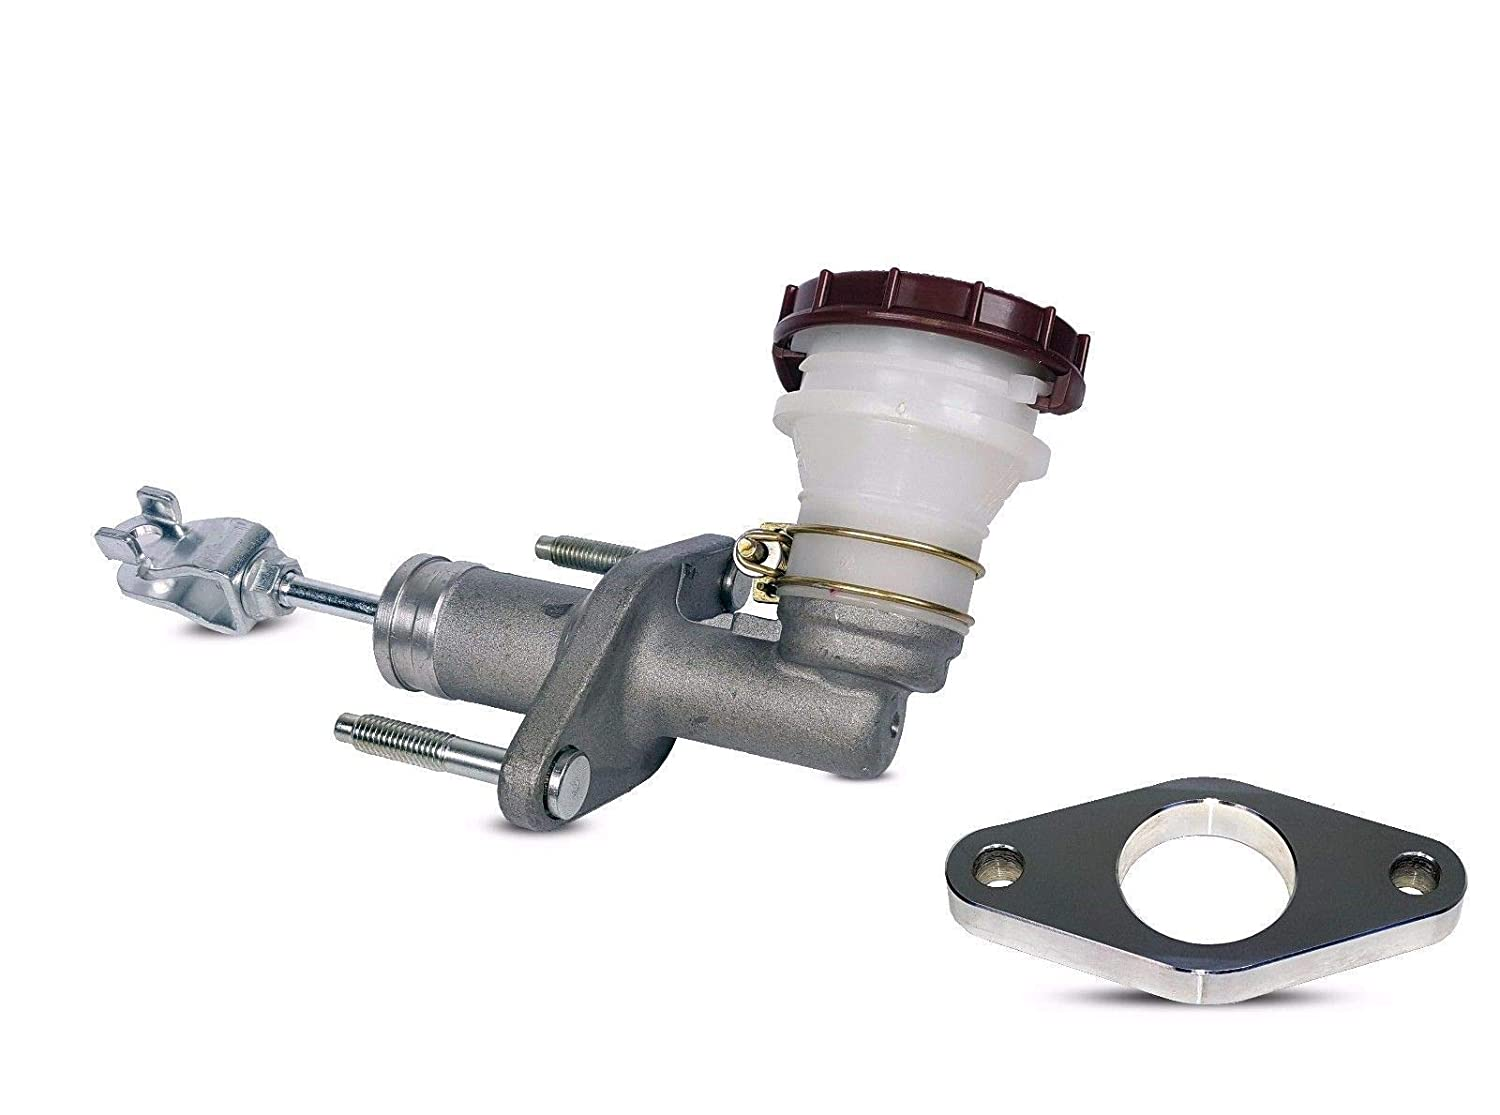 Clutch Master Cylinder With Adapter Works With Acura Integra Honda Civic Si Gs Gs-R Ls Type R Hatchback Sedan Coupe 1994-2001 1.6L L4 1.8L L4 B18B1; B16A2